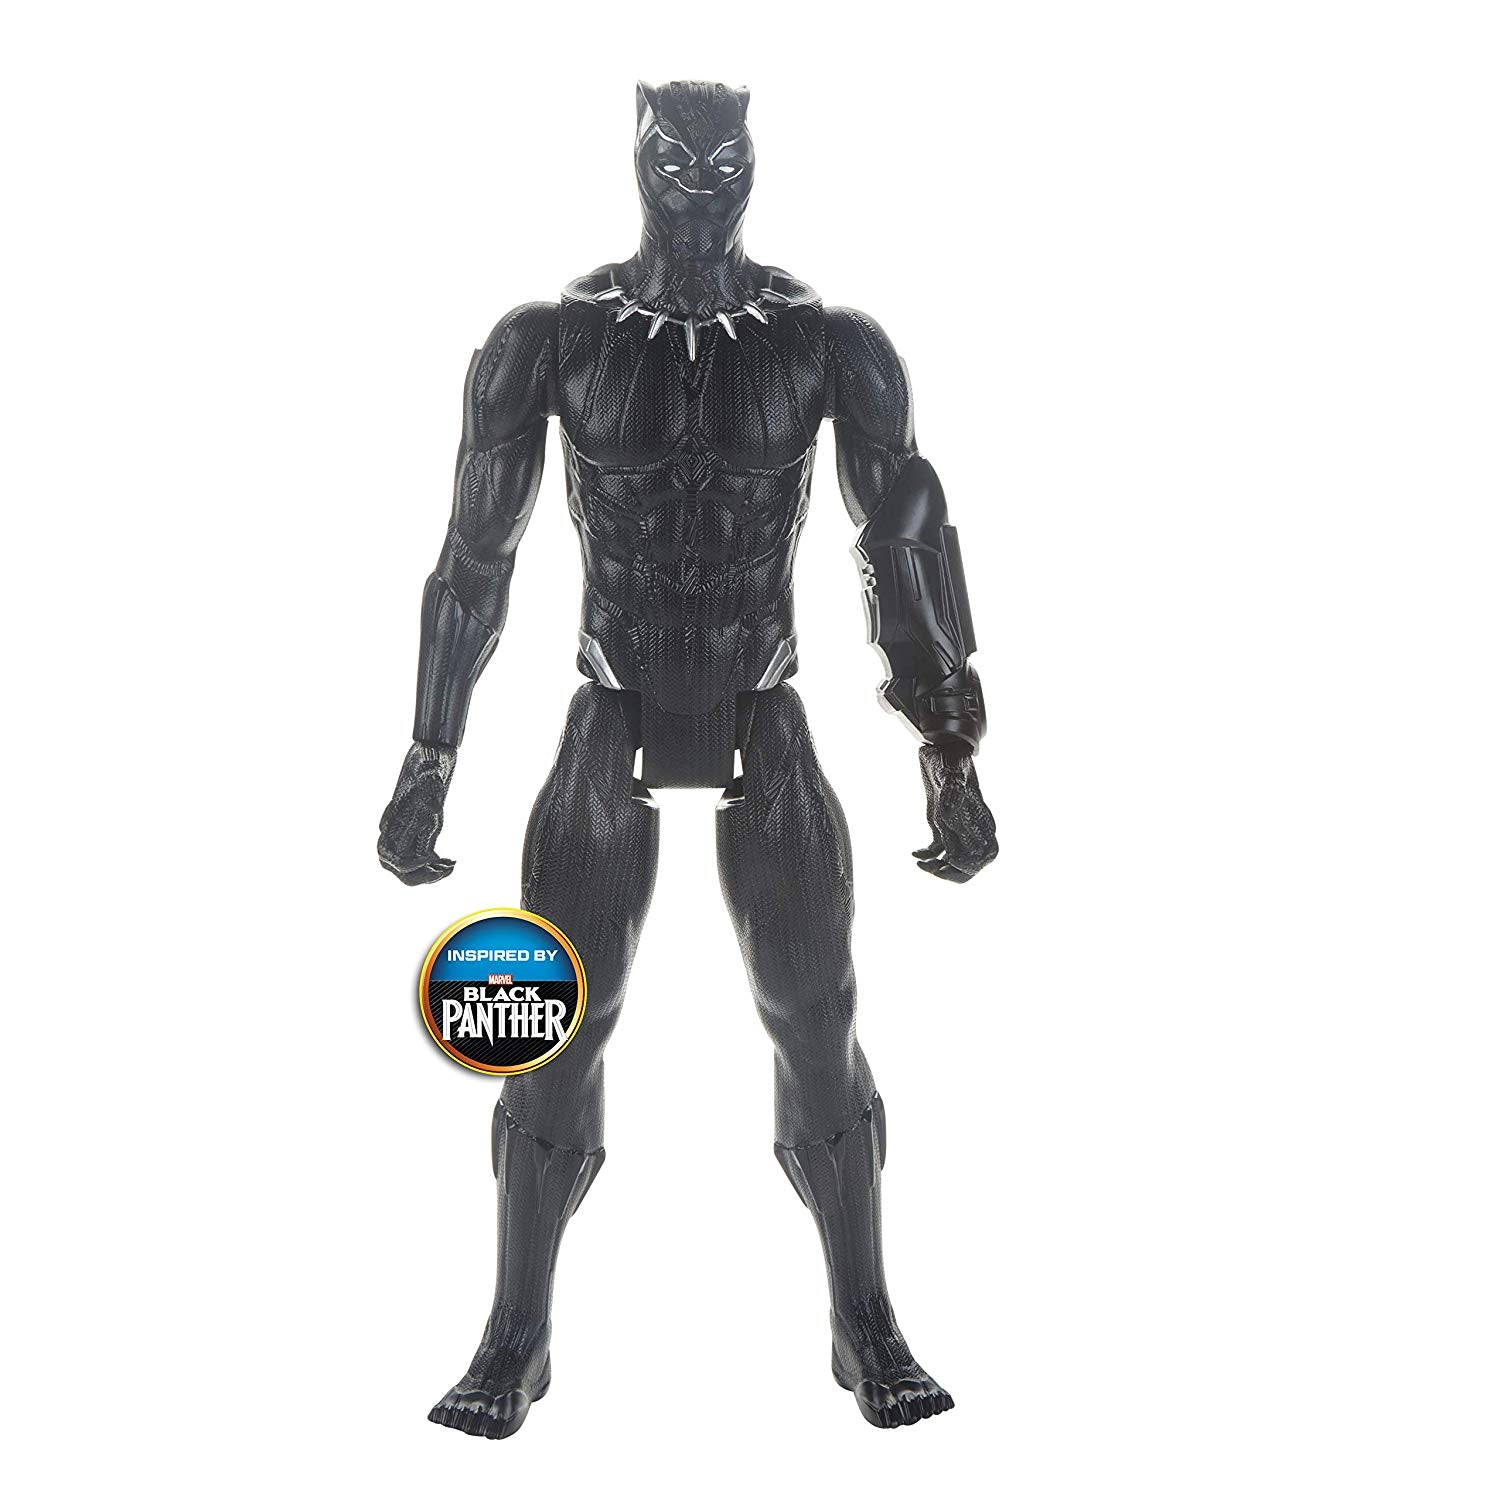 Avengers EndGame Black Panther 12-Inch Figure by Hasbro